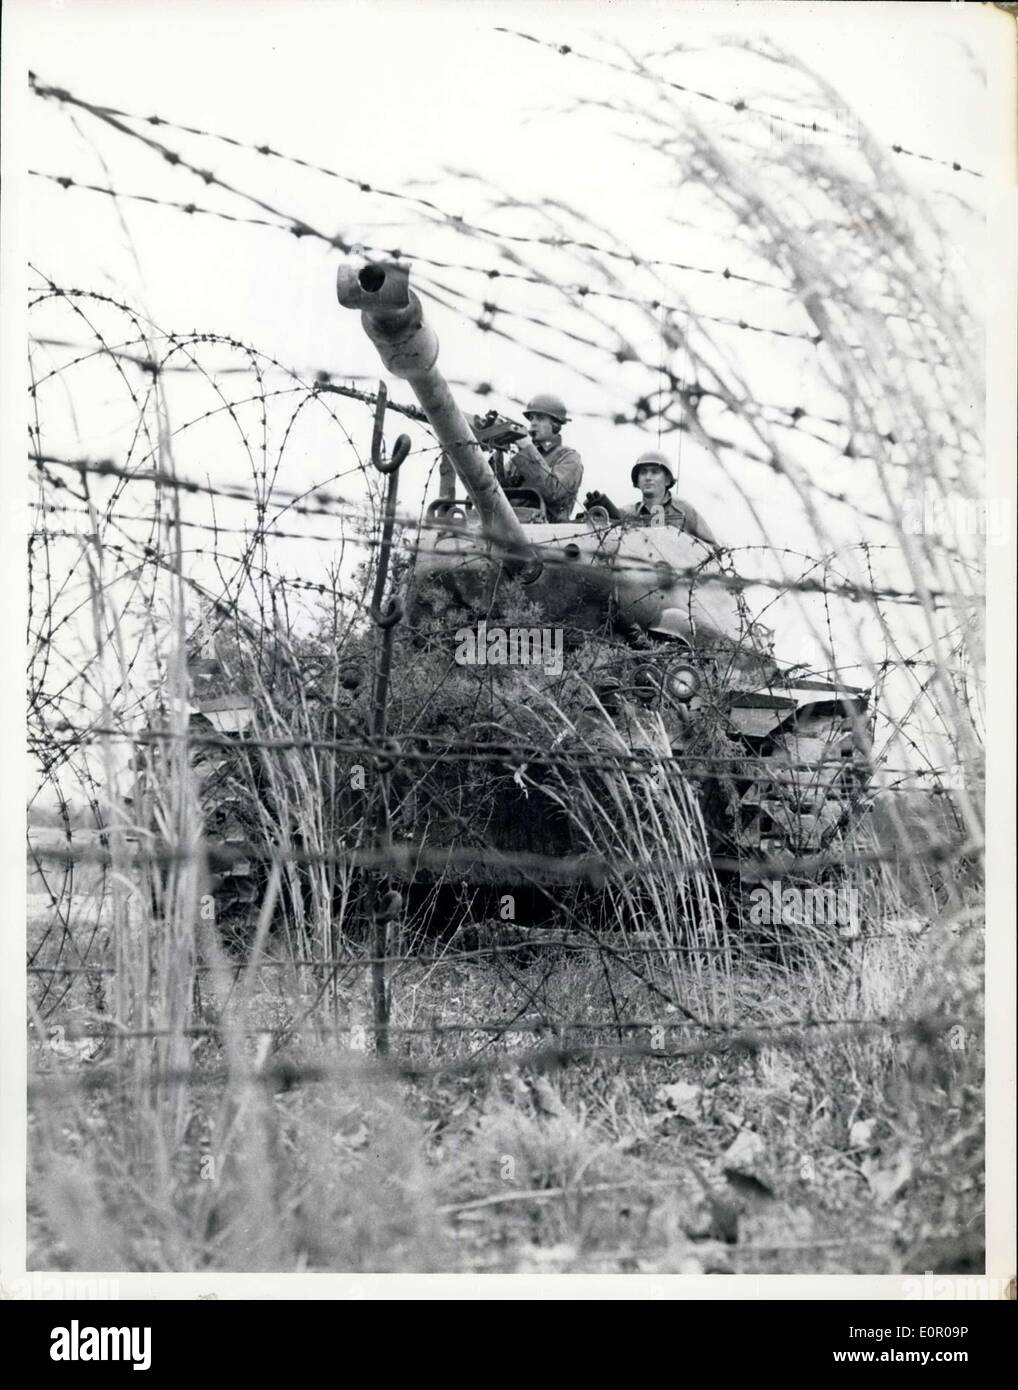 May 31, 1957 - Men of the Second Armored Cavalry - An M-41 Tank of the Second Armored Cavalry Regiment, Fort George Stock Photo